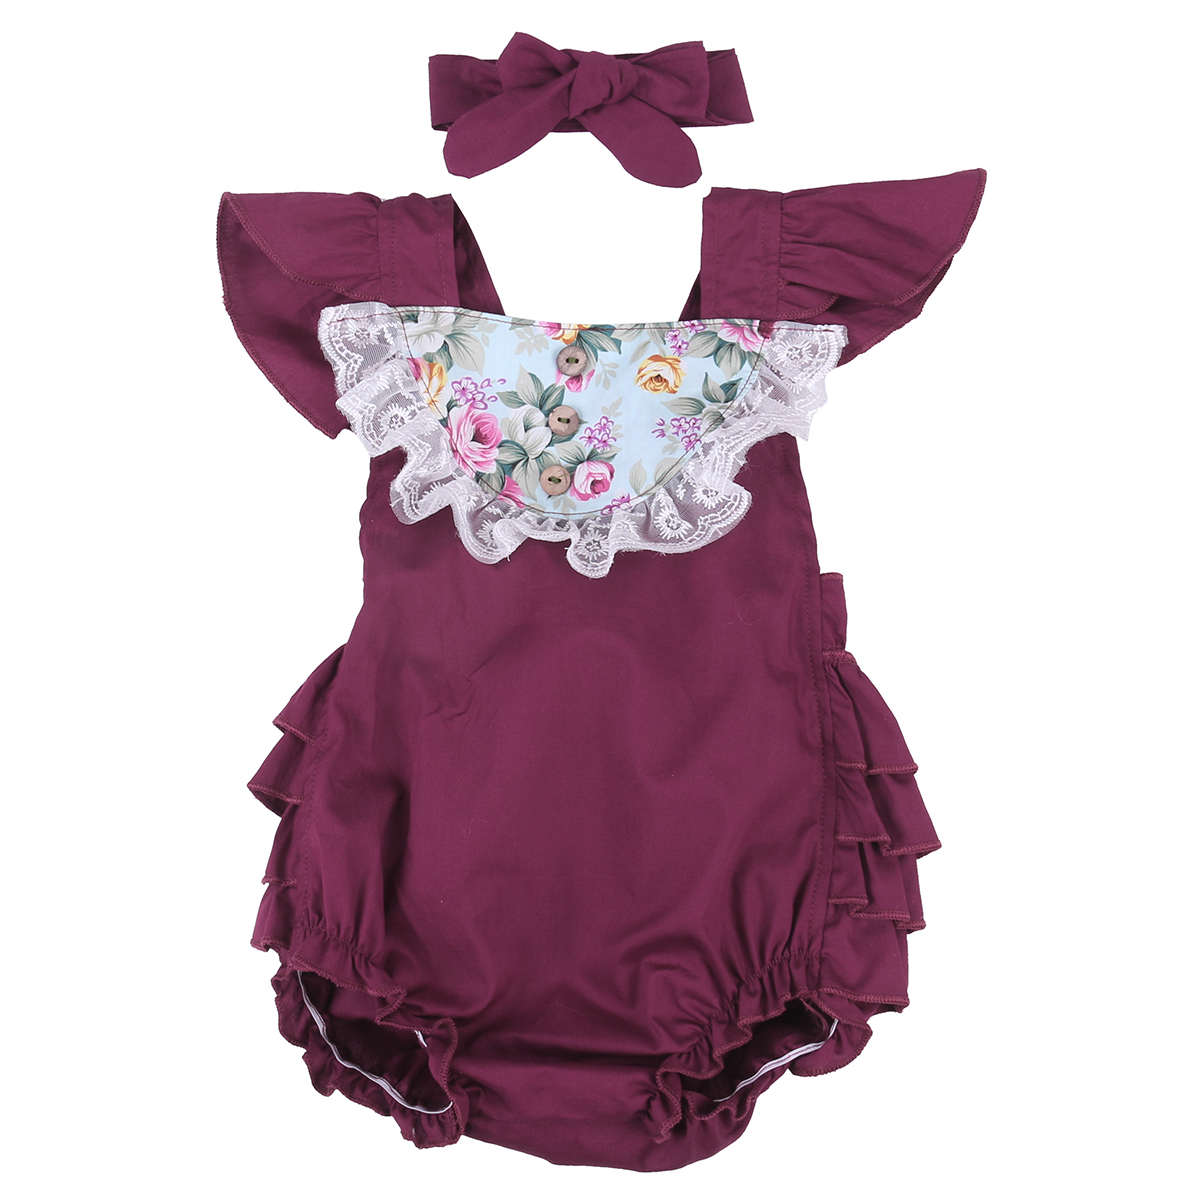 2017 Summer Baby Clothes Floral Ruffles Romper Sunsuit Fly Sleeve Tutu Tulle+Headband Outfit Clothing 2017 floral newborn baby girl clothes ruffles romper baby bodysuit headband 2pcs outfits sunsuit children set